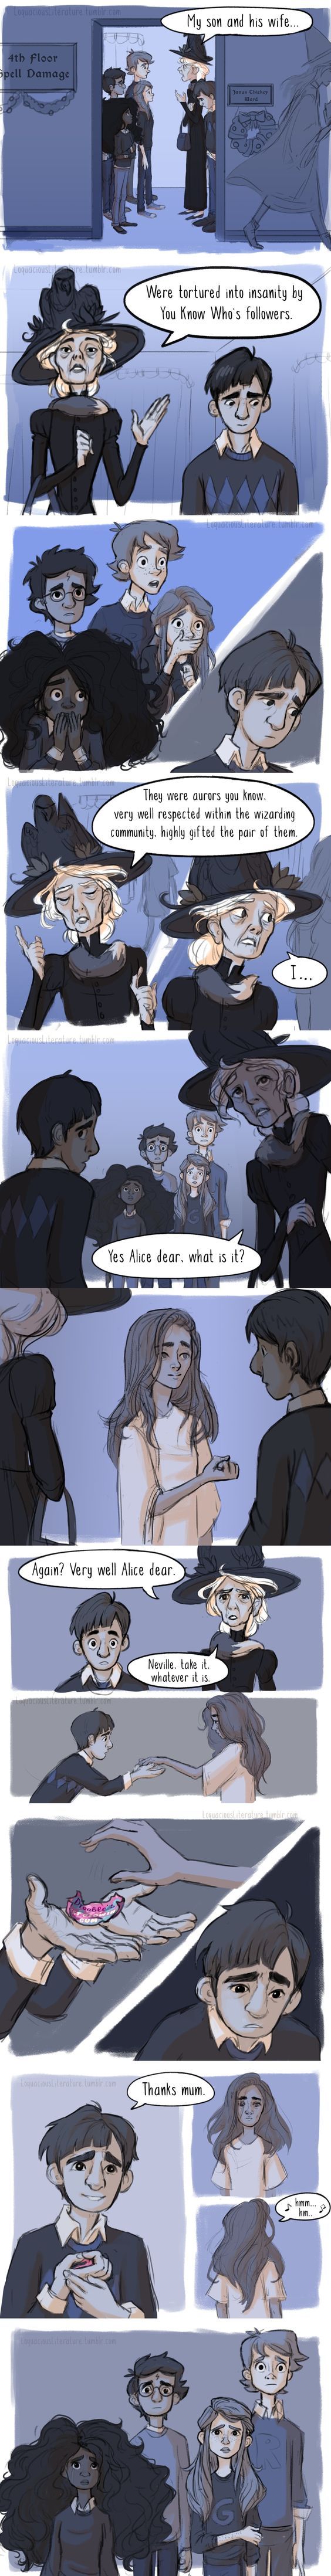 Harry Potter Book 5 Scene---I love this! So beautiful! (Plus Hermione's hair is just fantastic):